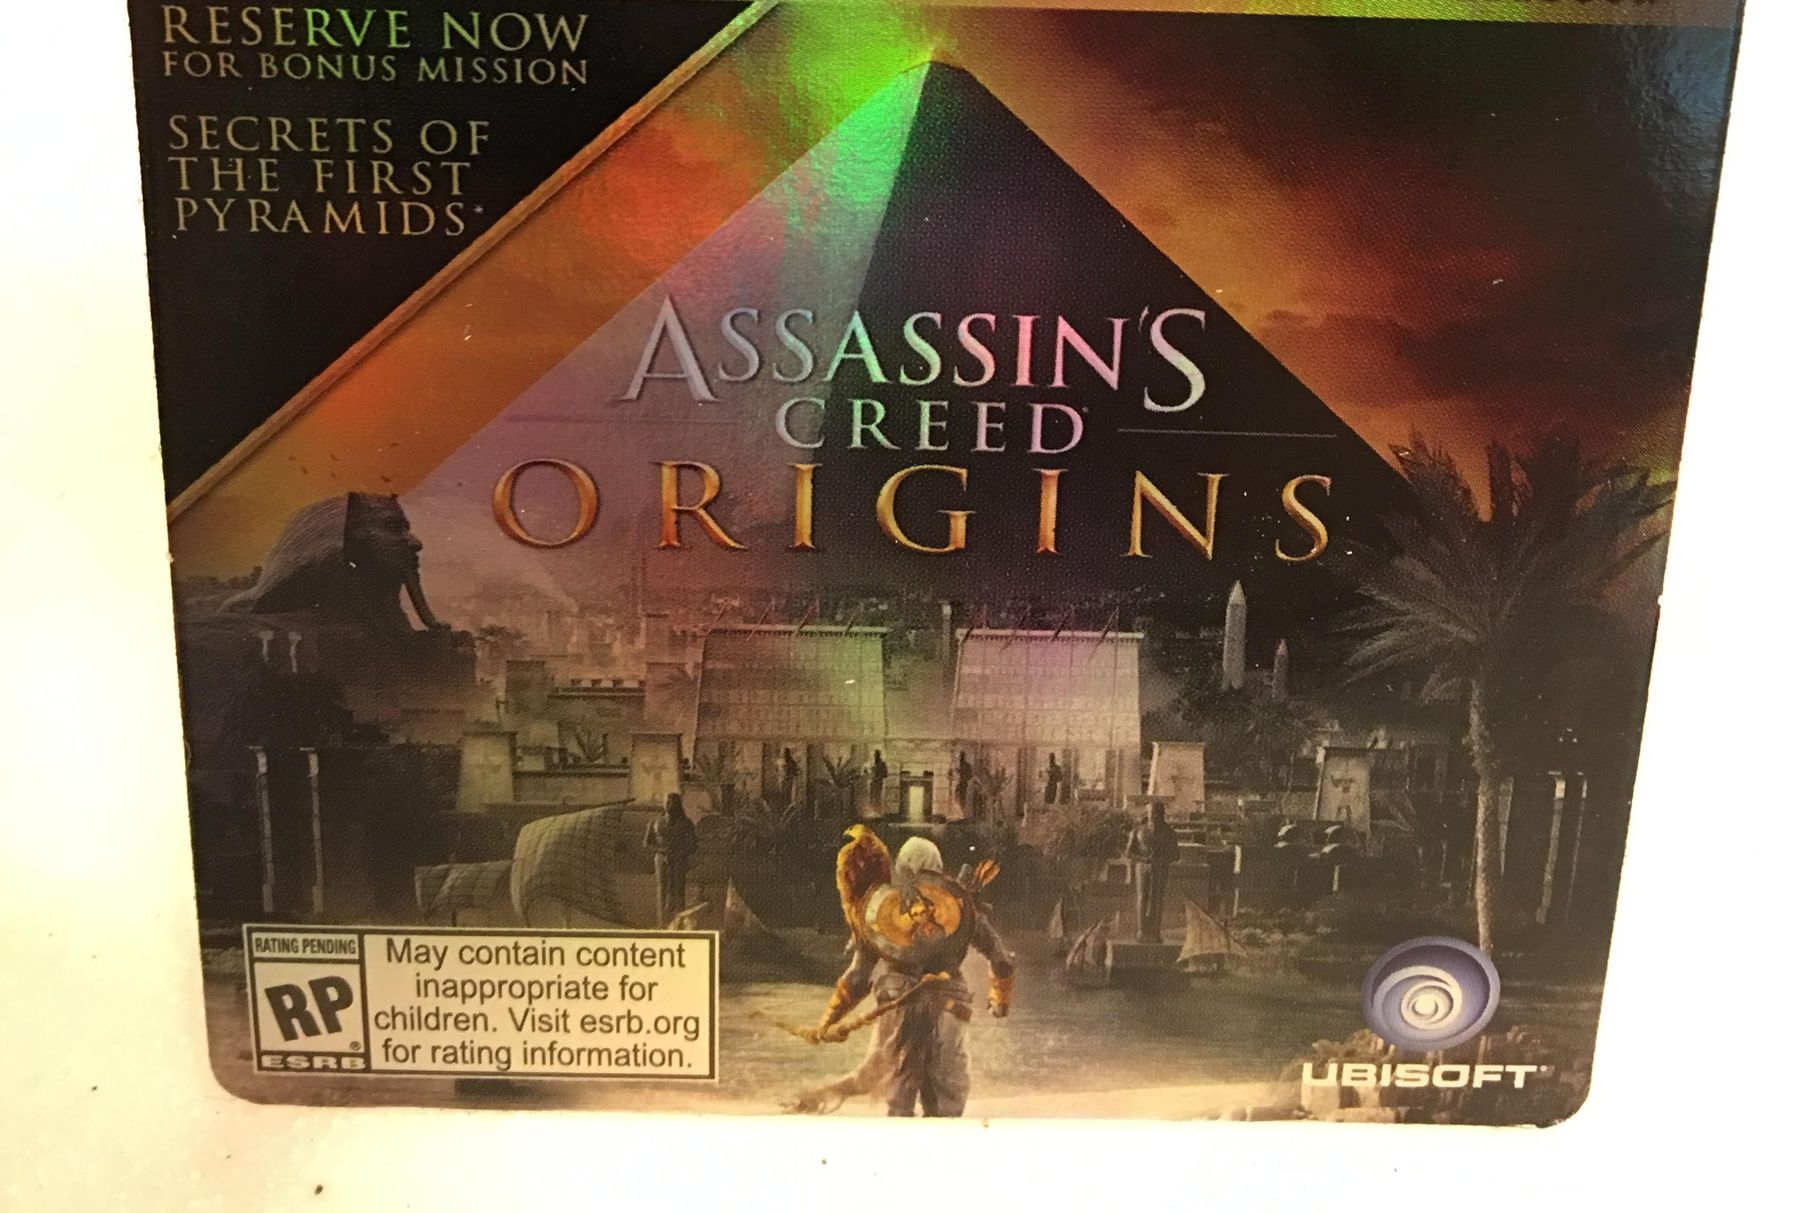 New Information Points To Assassin's Creed Origins: Gold Edition, Location